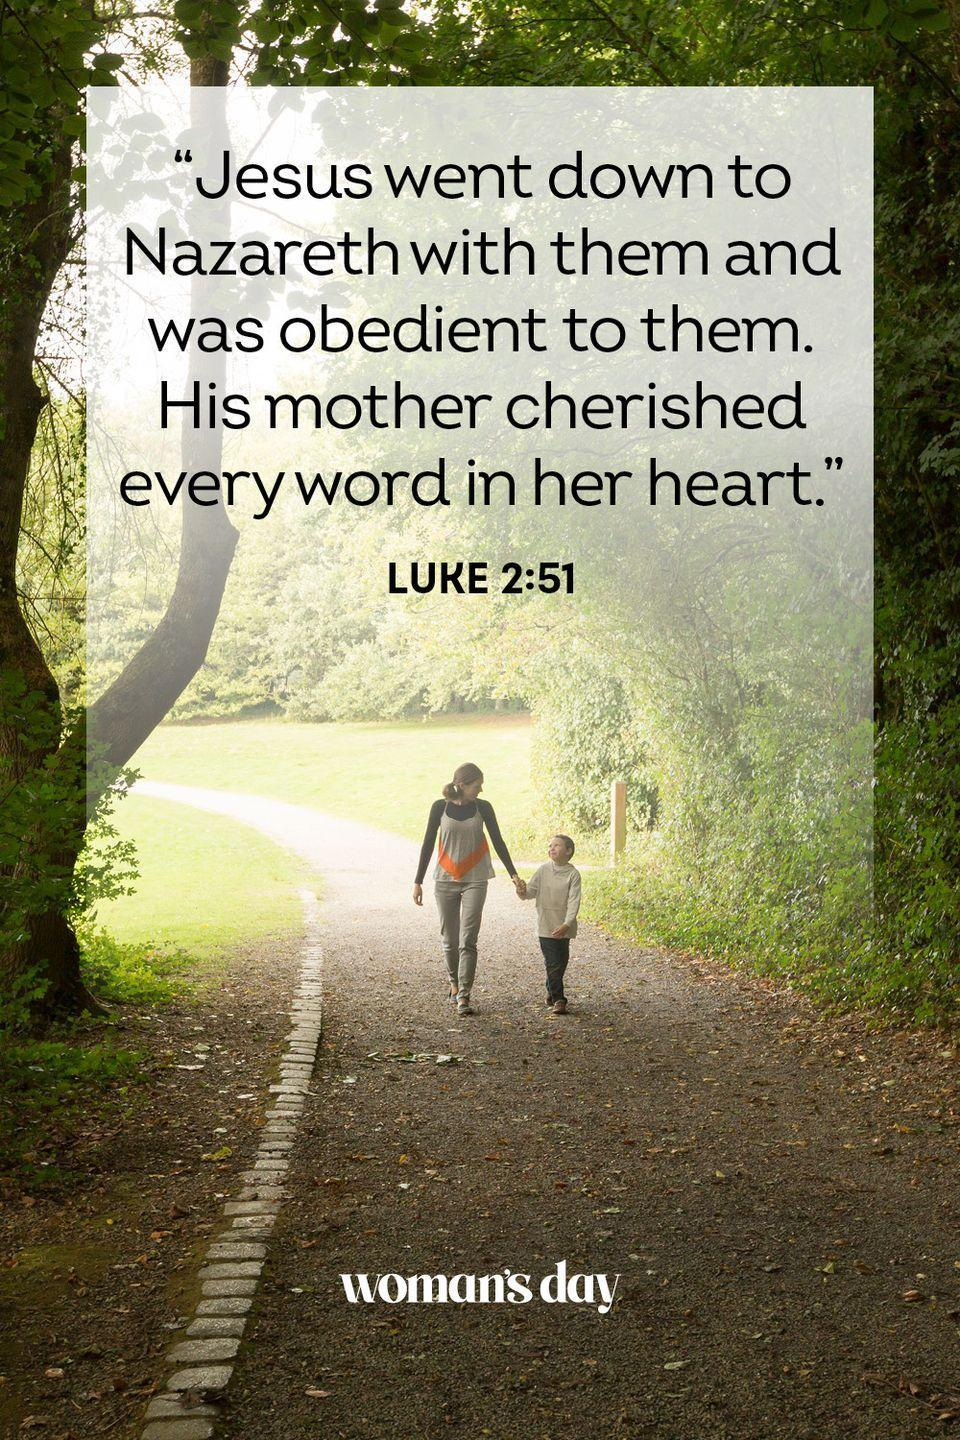 "<p>""Jesus went down to Nazareth with them and was obedient to them. His mother cherished every word in her heart.""</p><p><strong>The Good News:</strong> A mother's joy is one that cannot be duplicated.</p>"